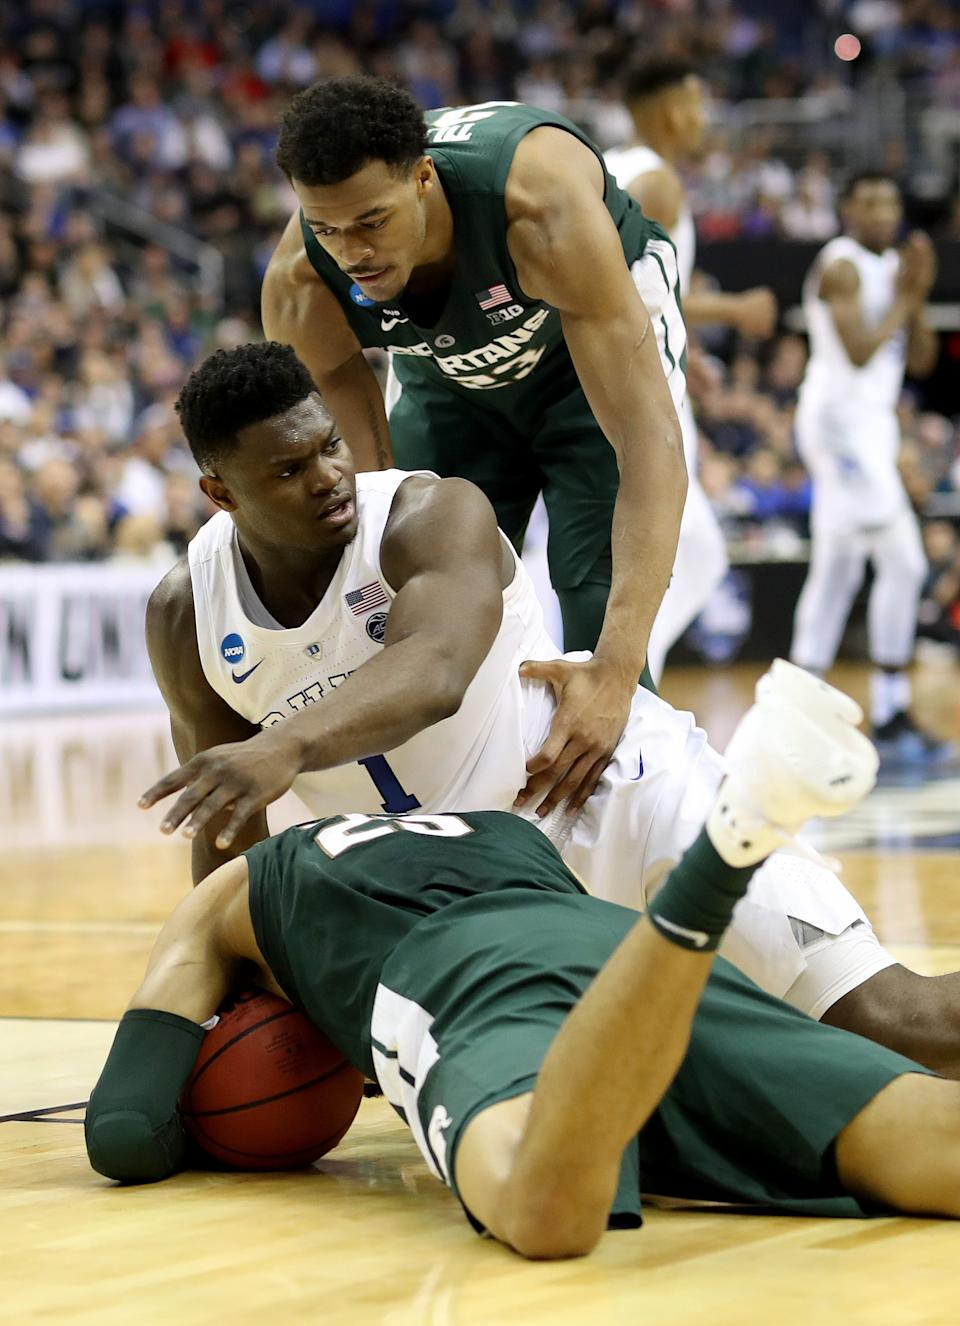 Duke's Zion Williamson reacts from the ground against Michigan State's Xavier Tillman, top, and Kenny Goins during the first half of the NCAA tournament East Region final on Sunday, March 31, 2019 in Washington.